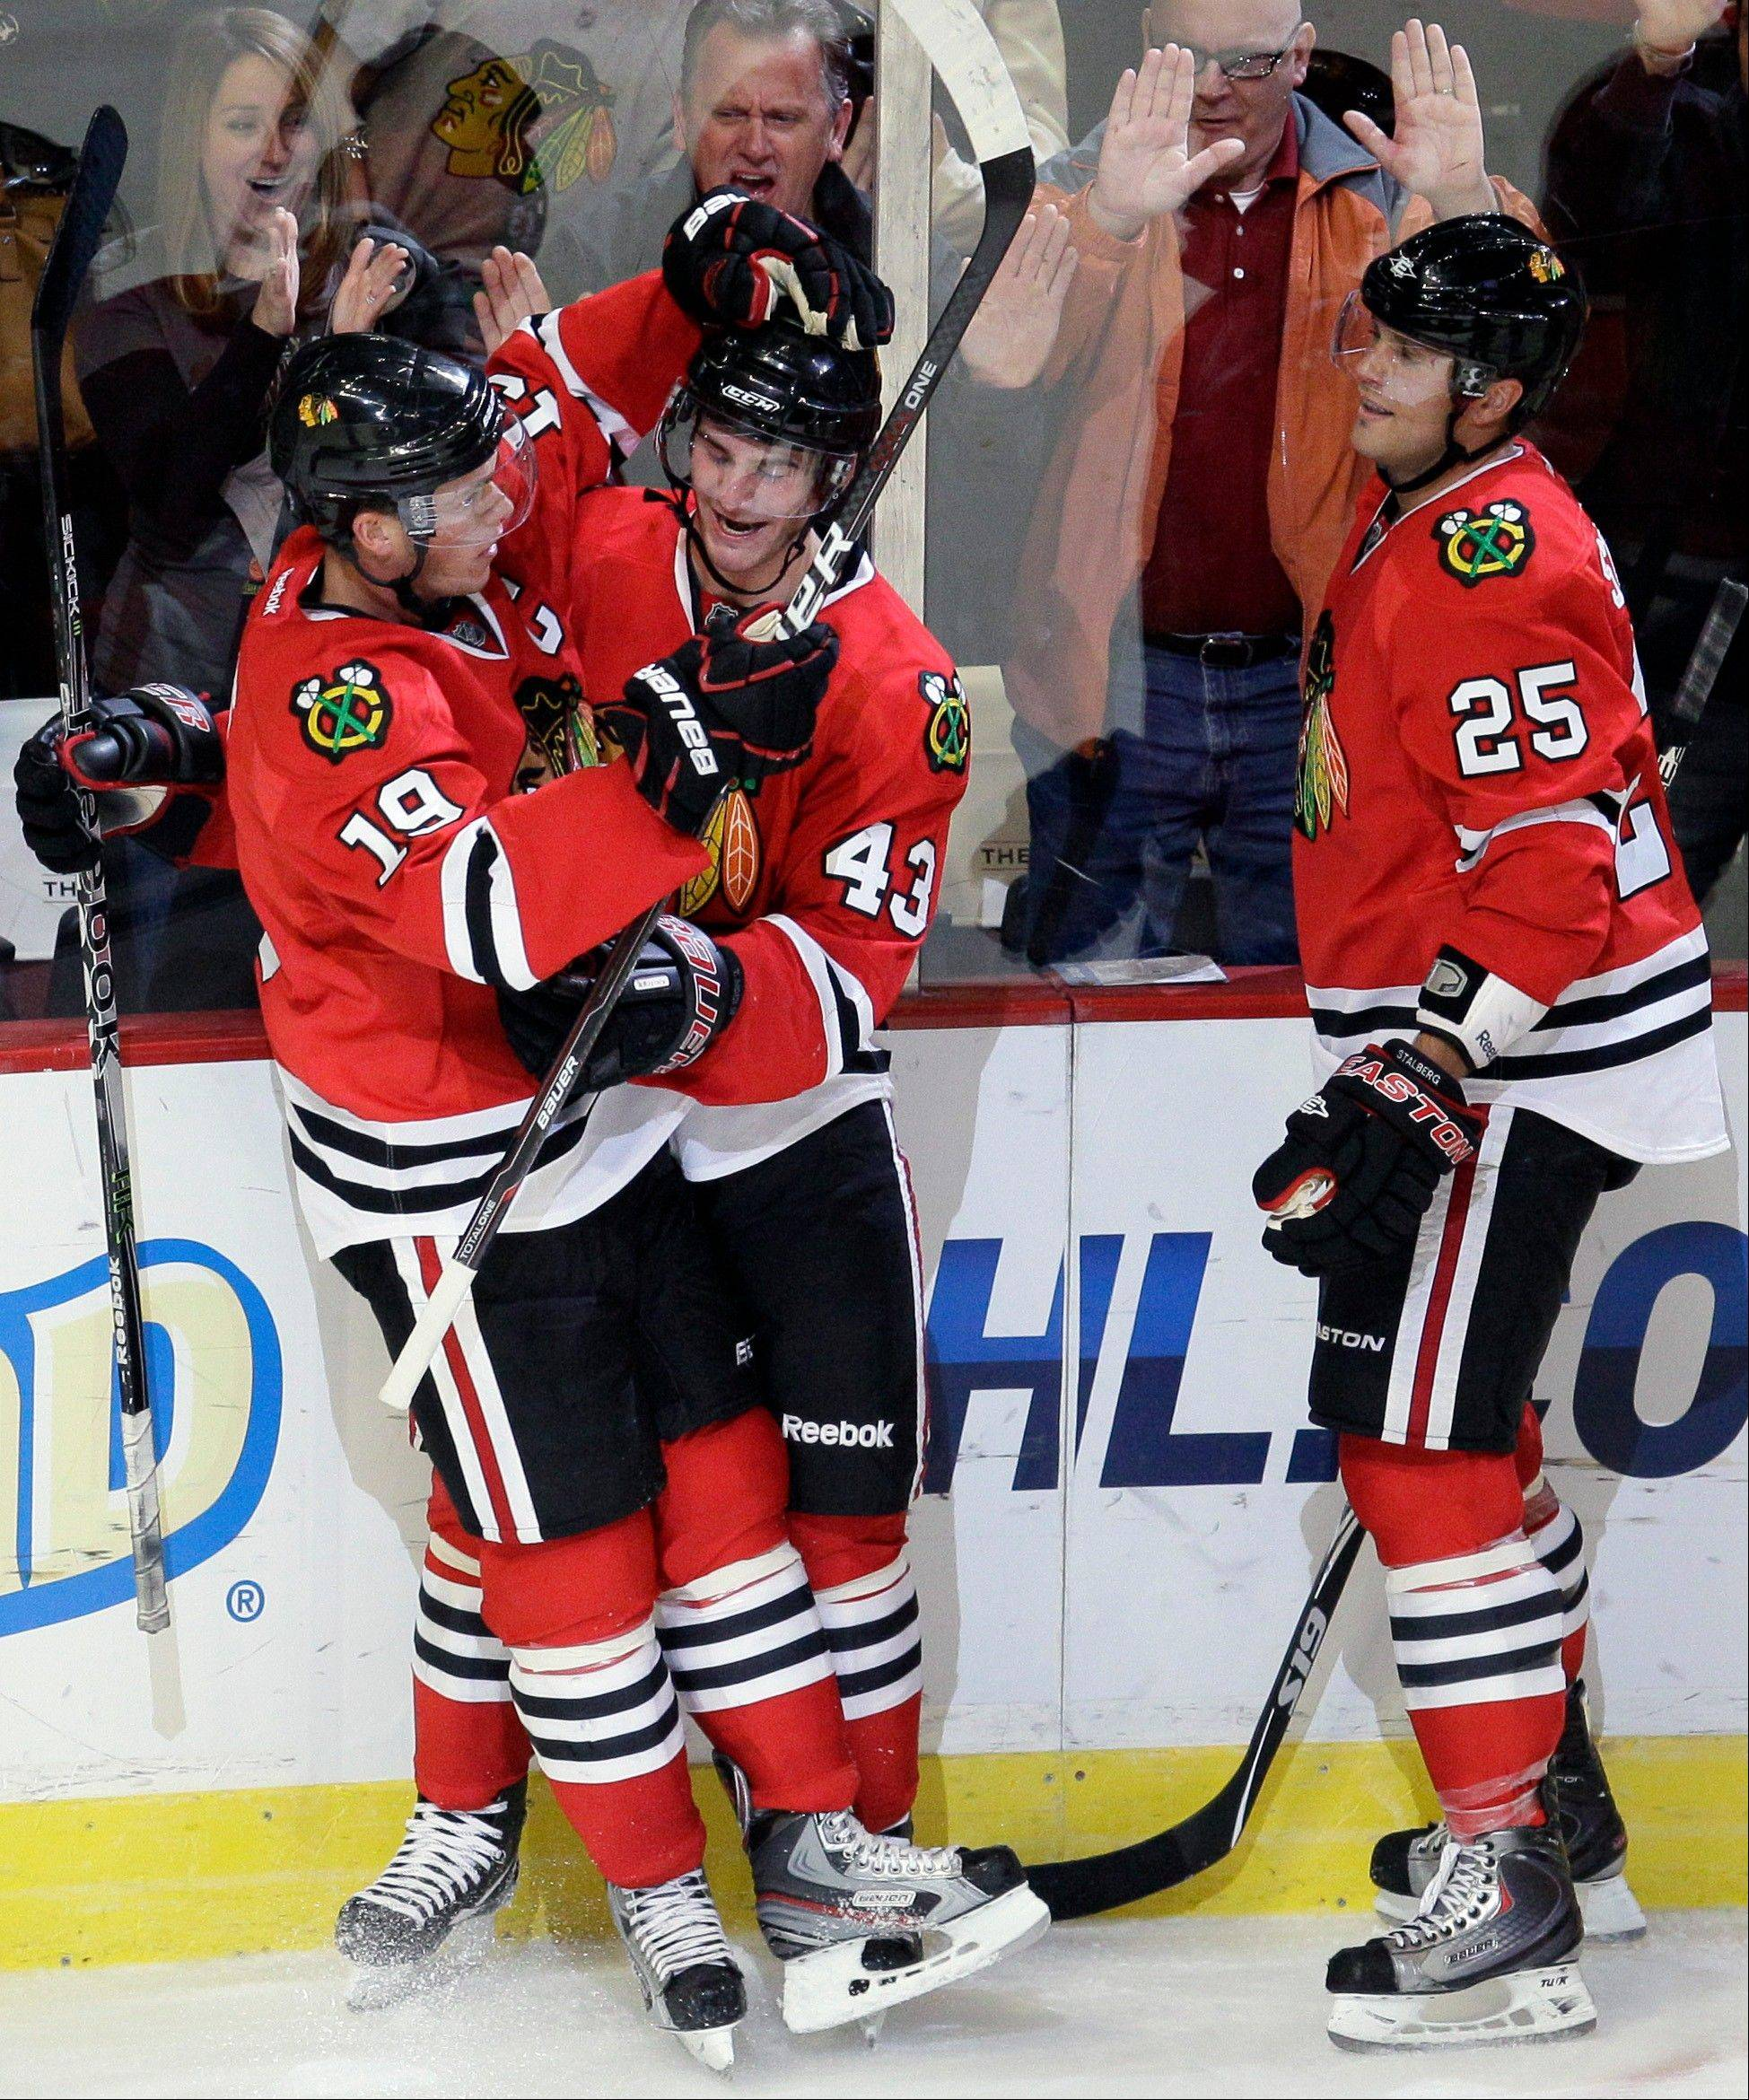 Chicago Blackhawks' Brandon Saad (43) celebrates with Jonathan Toews (19) and Viktor Stalberg (25) after Saad scoring the game winning goal during the third period of an NHL preseason hockey game against the Washington Capitals in Chicago, Friday, Sept. 23, 2011. The Blackhawks won 3-2.